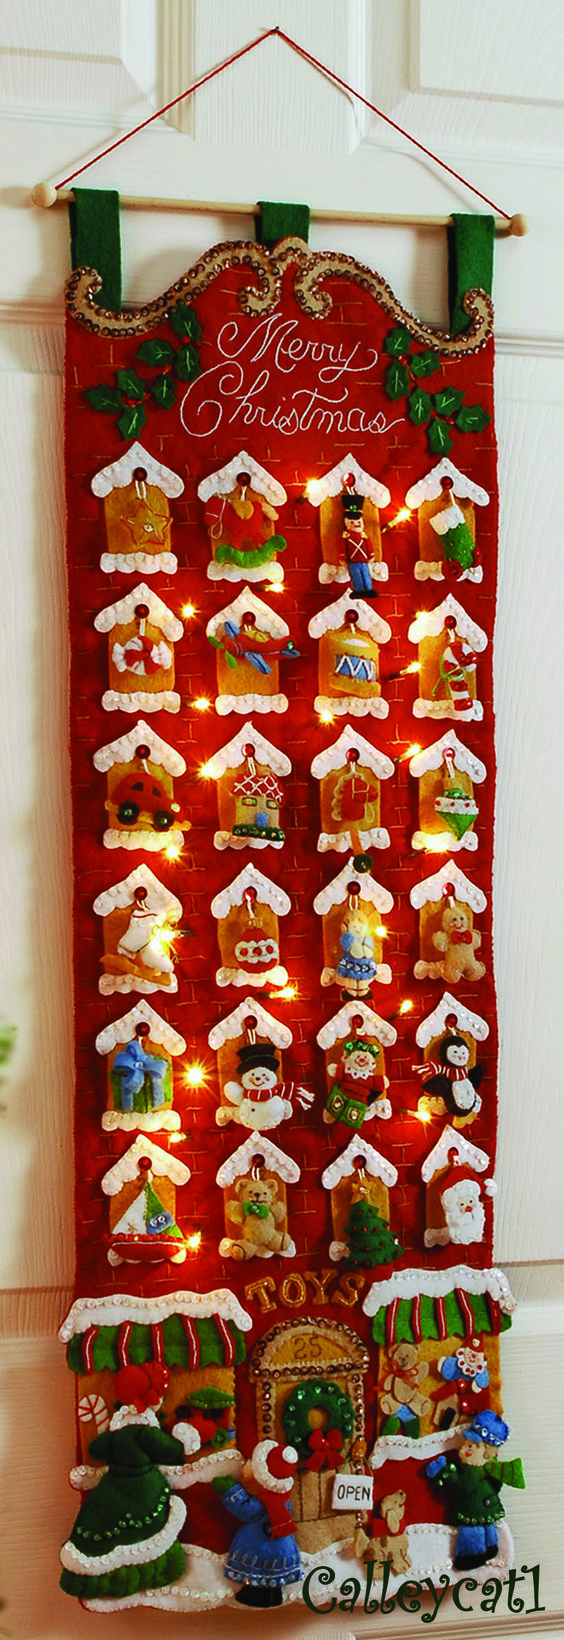 Advent calender, it lights up. Love that